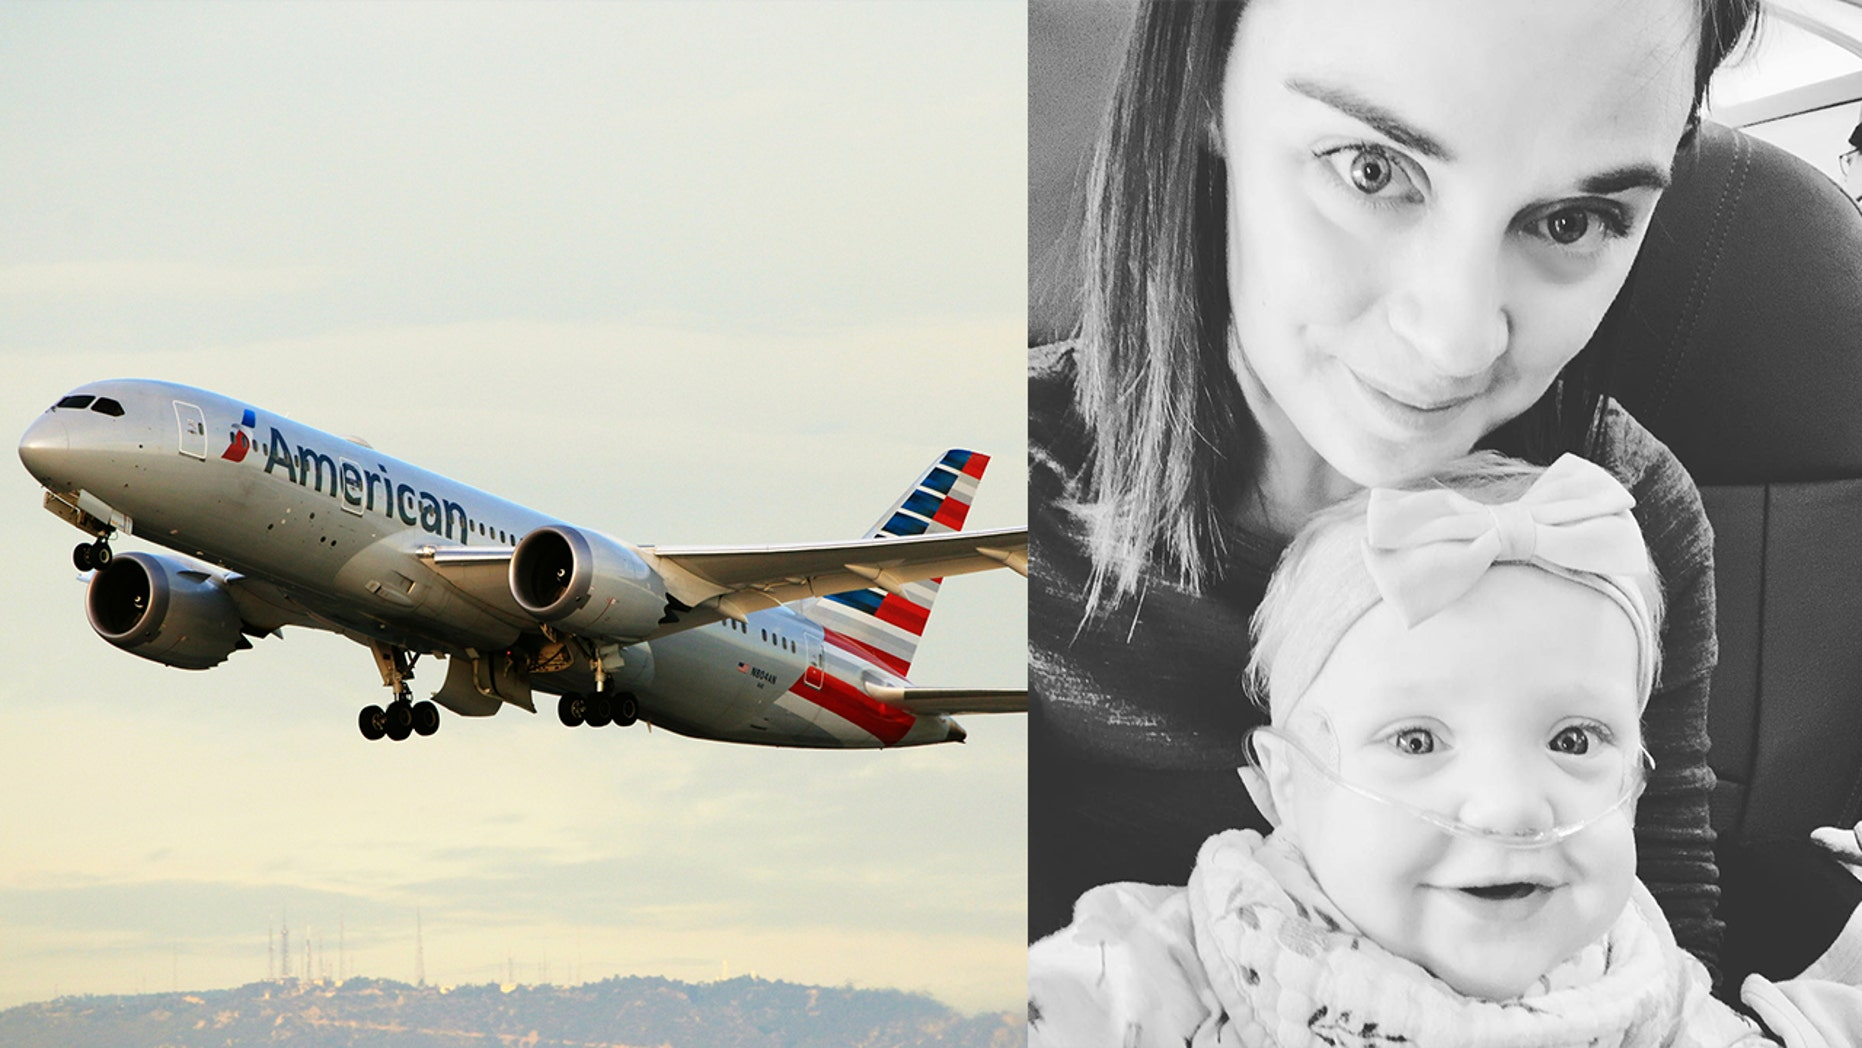 """""""To the man in 2D. Today you were traveling from Orlando to Philly. I don't know you, but I imagine you saw us somewhere. I was pushing a stroller, had a diaper bag on my arm and also lugging an oxygen machine for my daughter,"""" the Florida mom writes. """"We had smiles on our faces as we were headed to see her """"friends"""" at CHOP."""""""